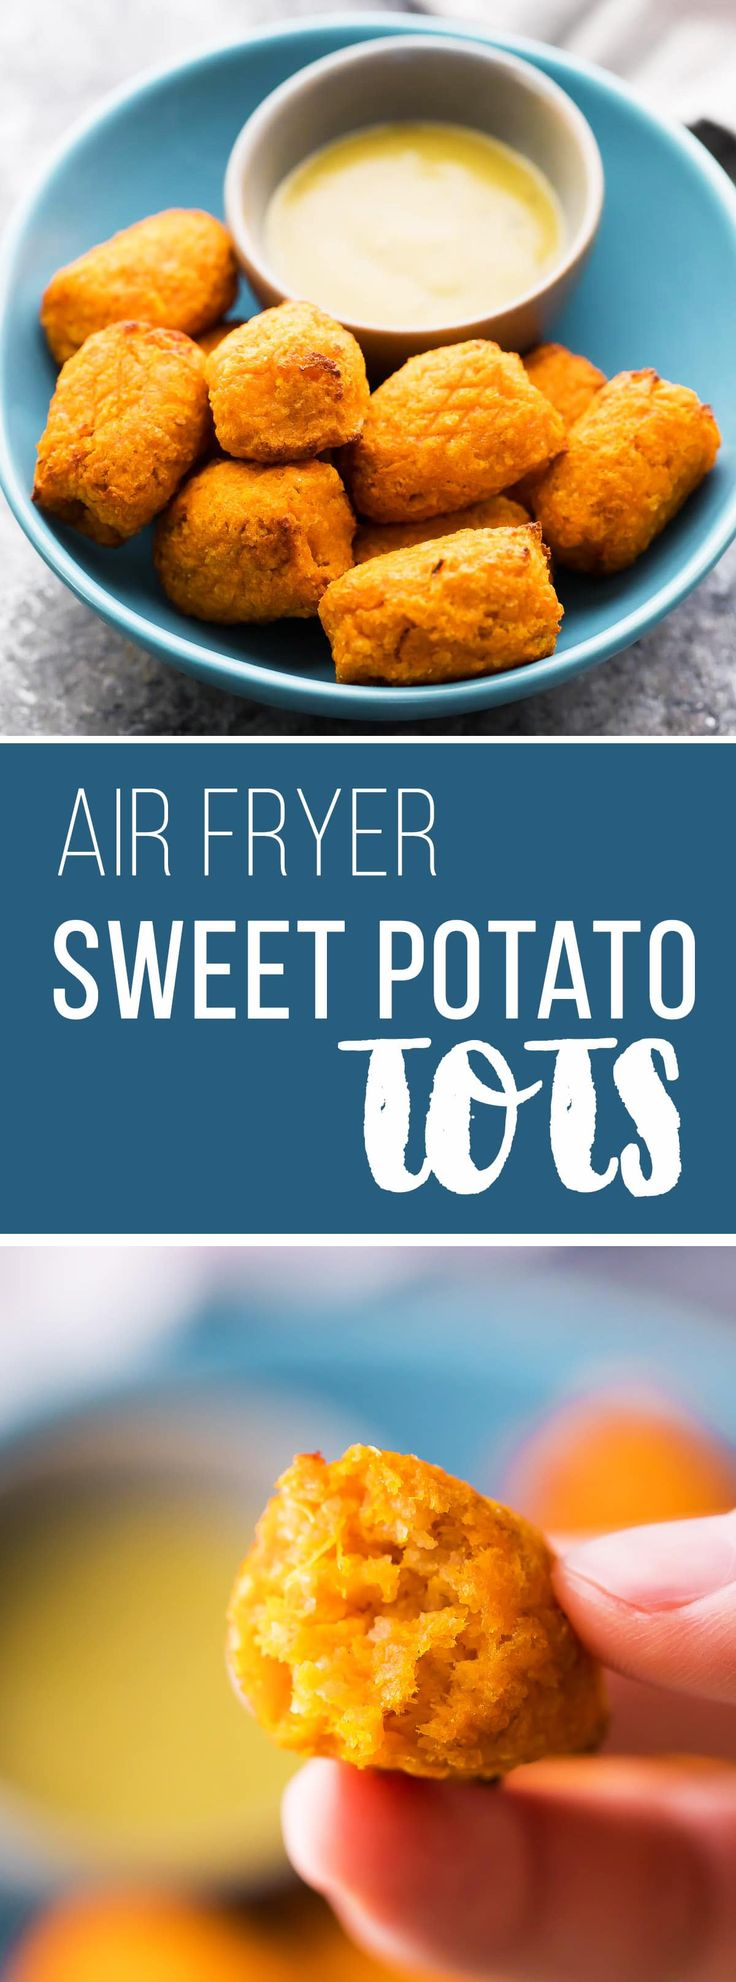 Crispy Air Fryer Sweet Potato Tots Recipe Sweet potato